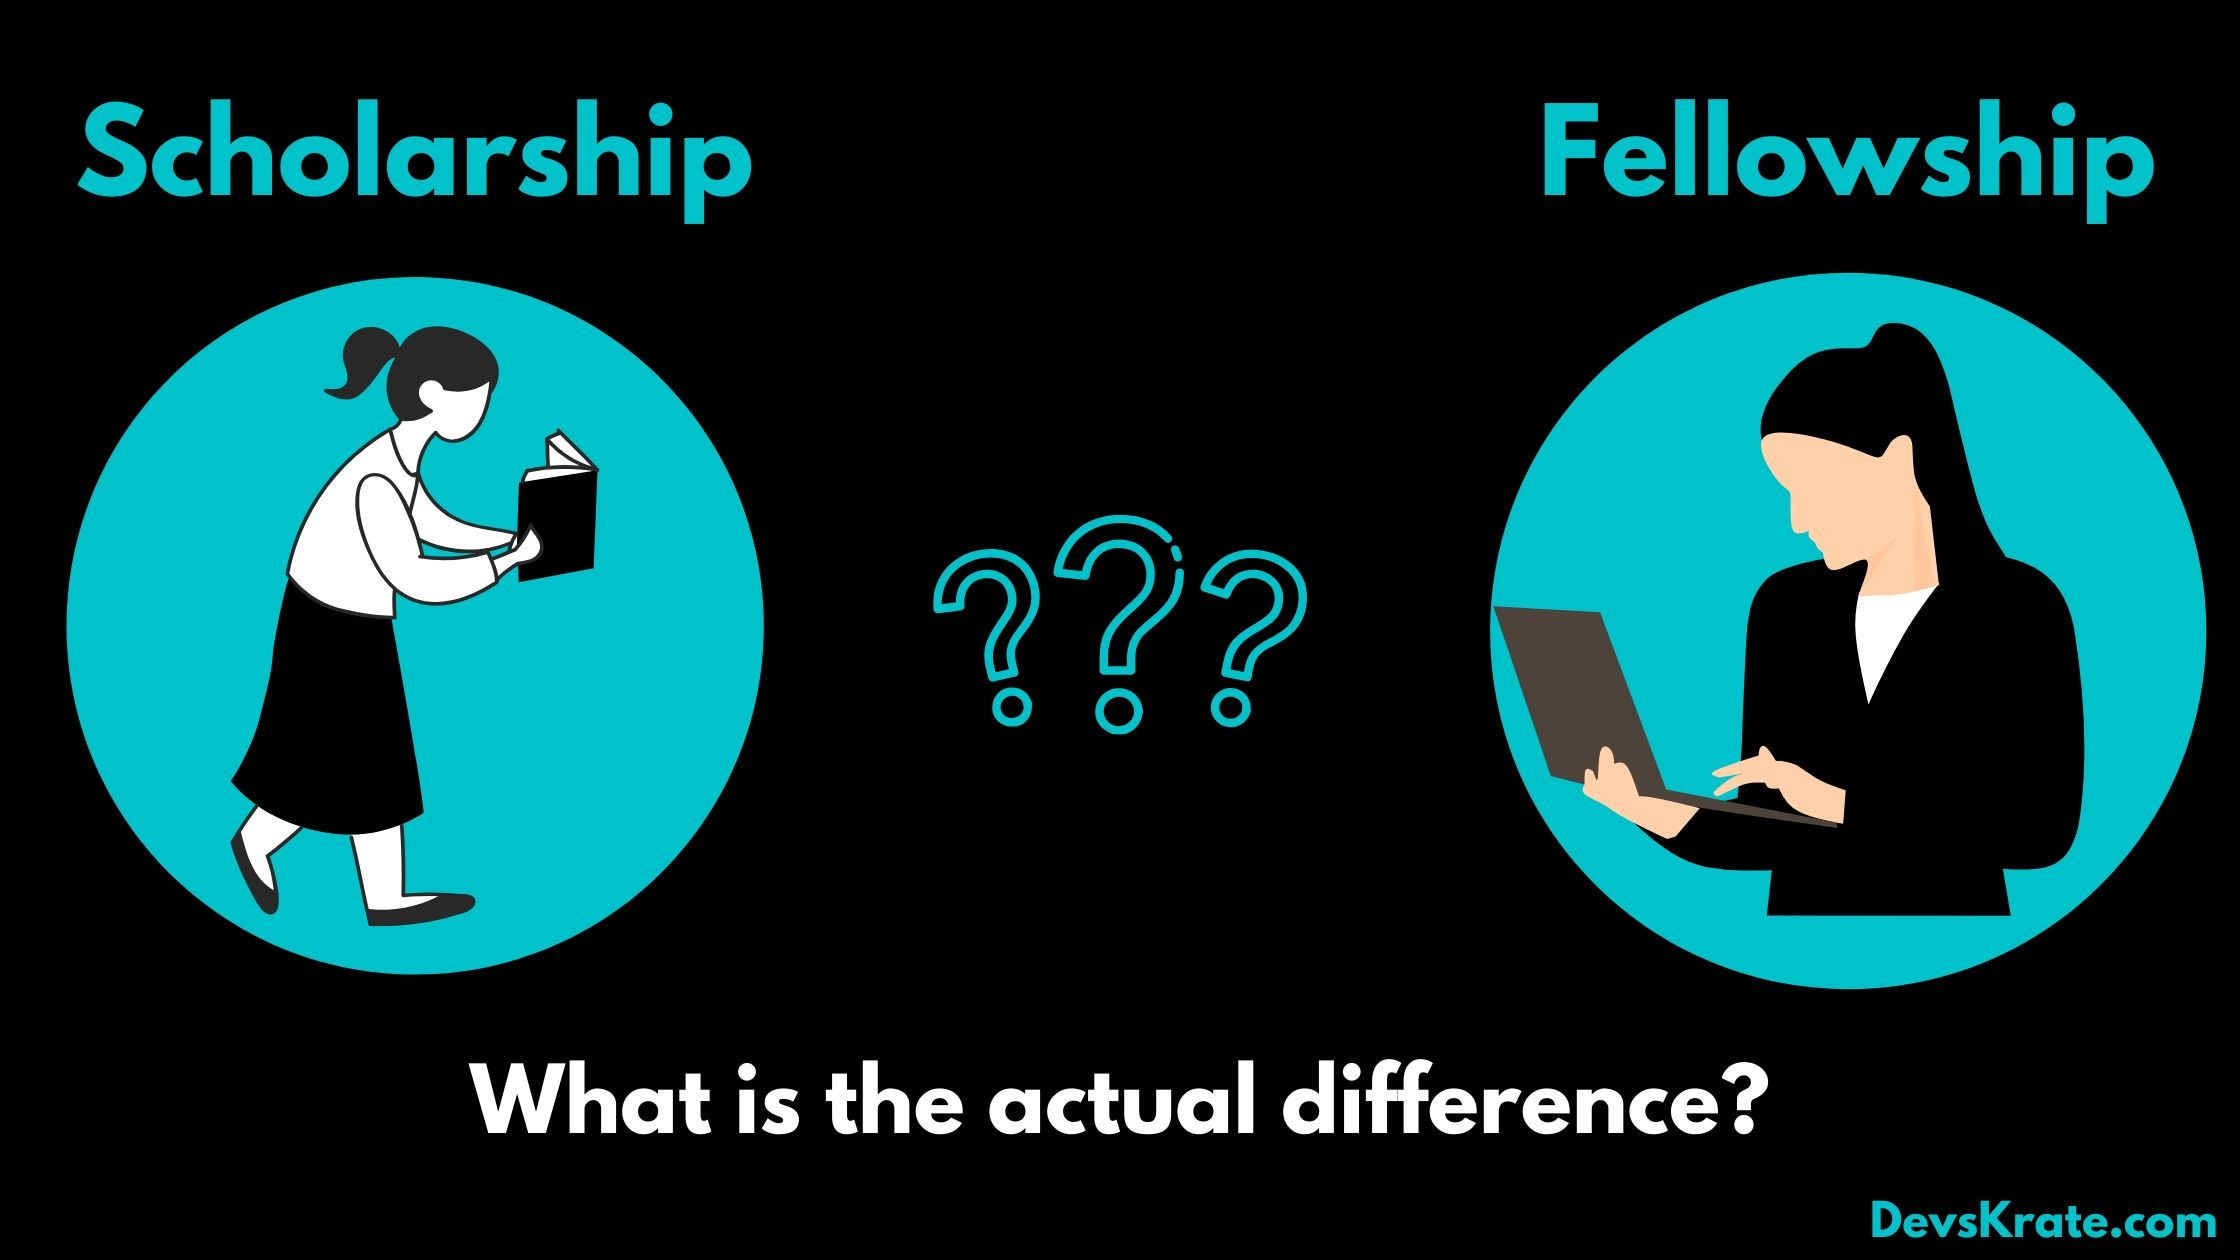 What is the difference between Scholarship and Fellowship?